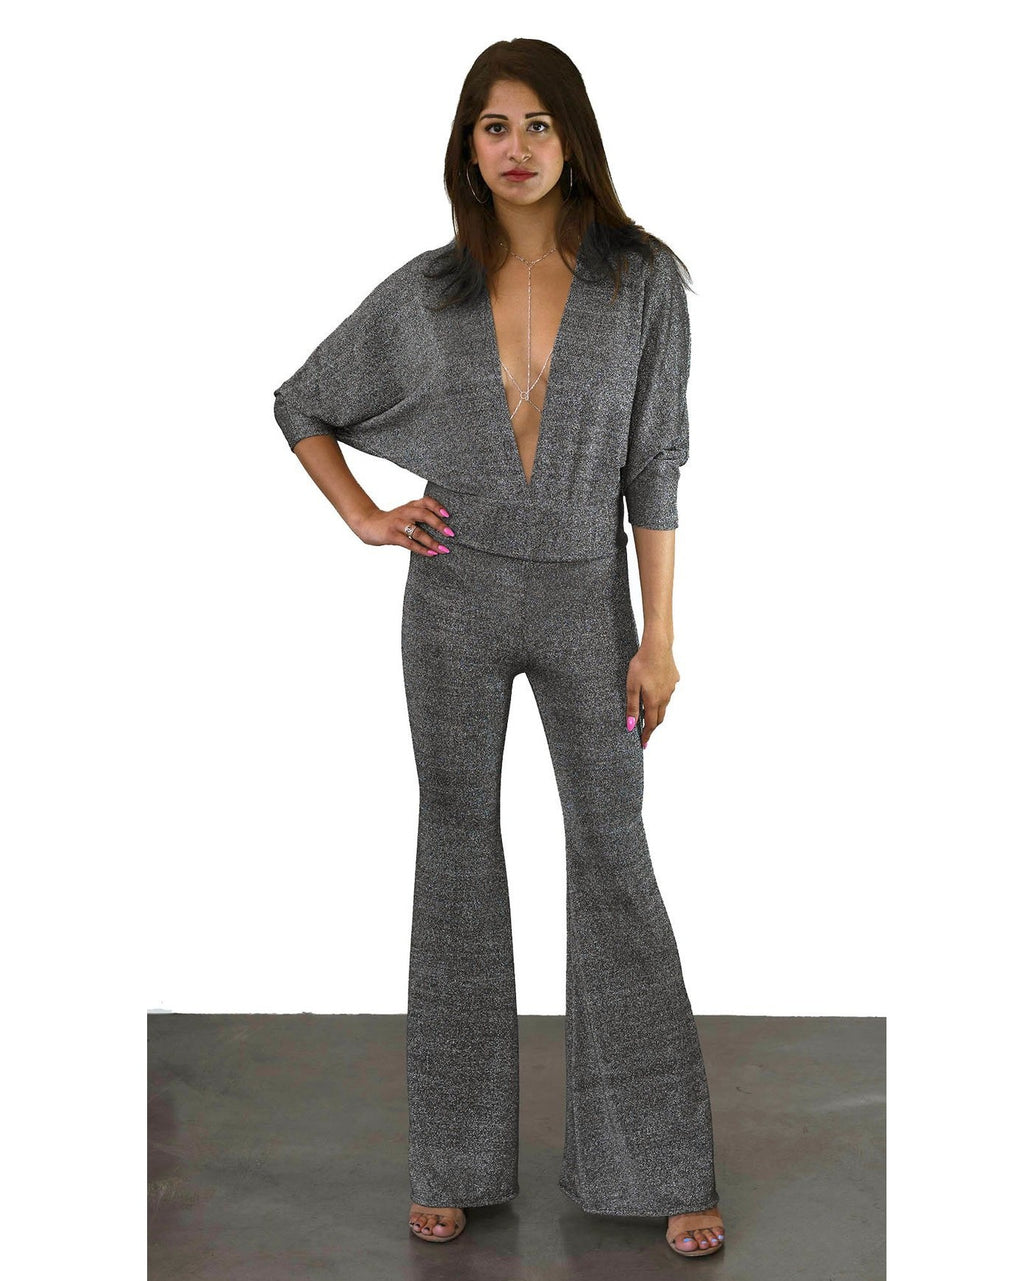 SUPERFOX JUMPSUIT - SILVER